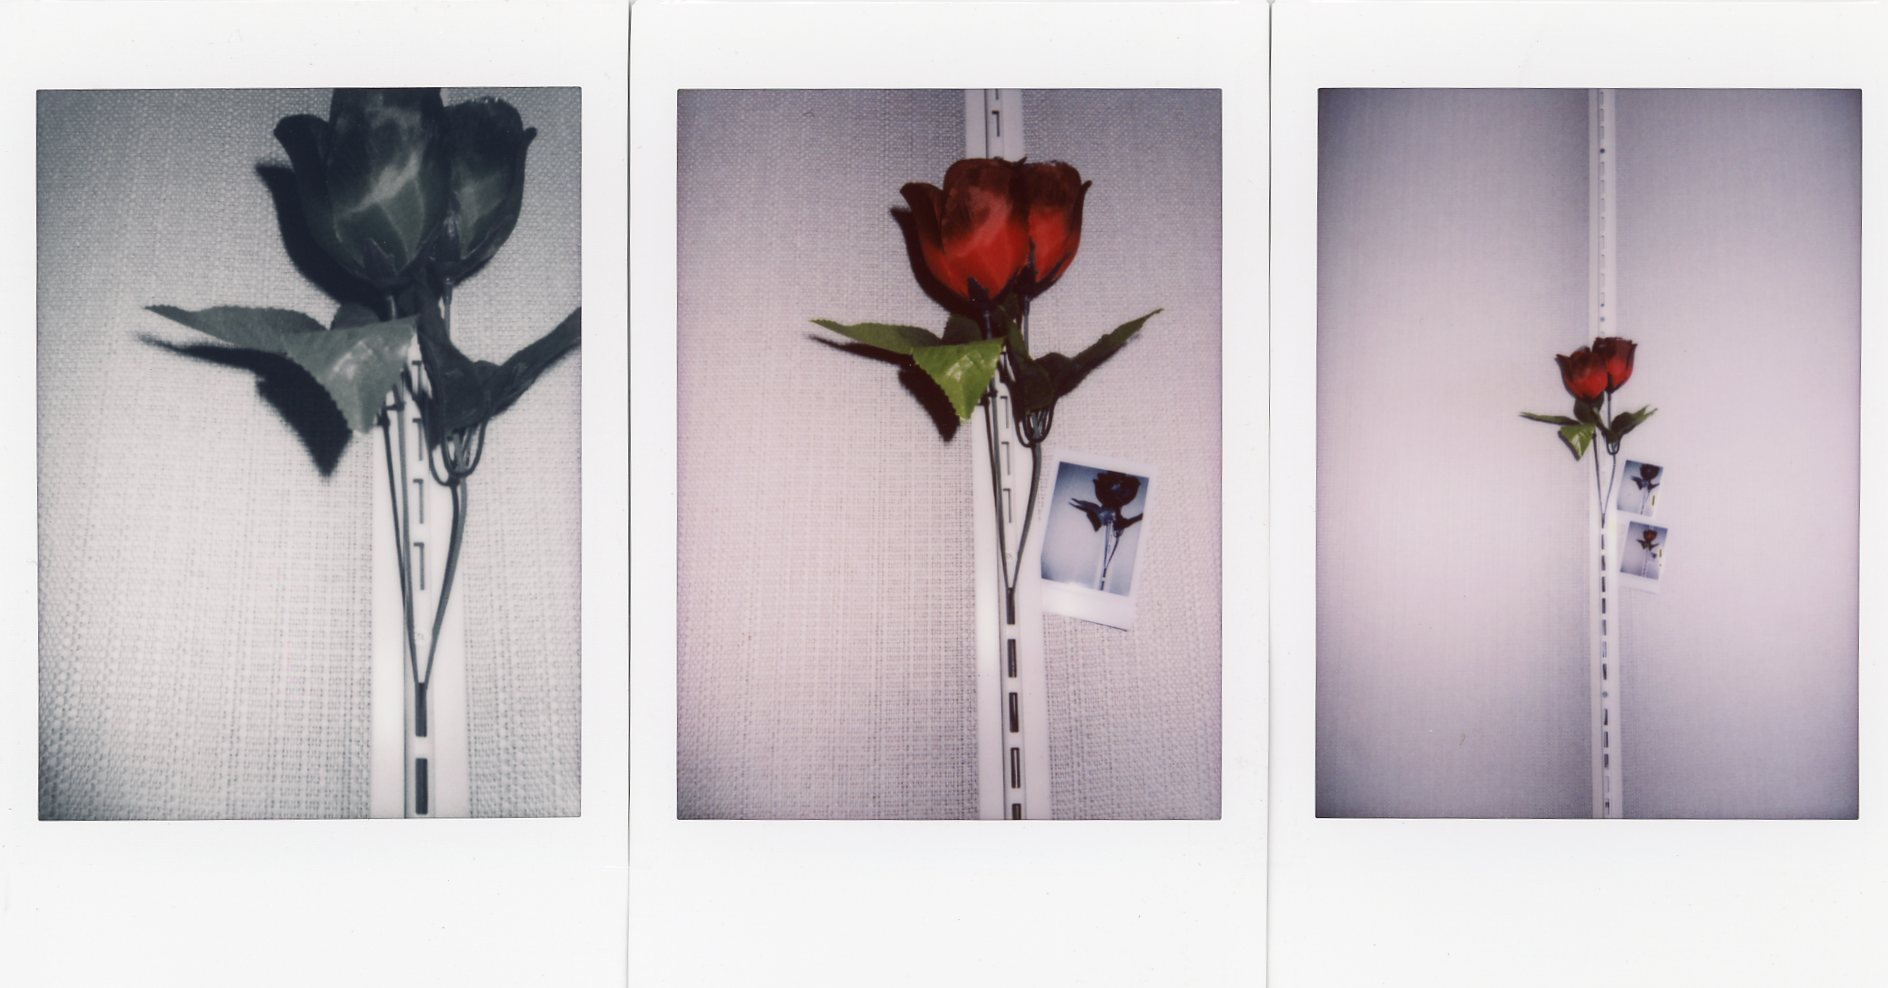 Artificial Flower | Instax Mini 70 | Daniel Stoessel